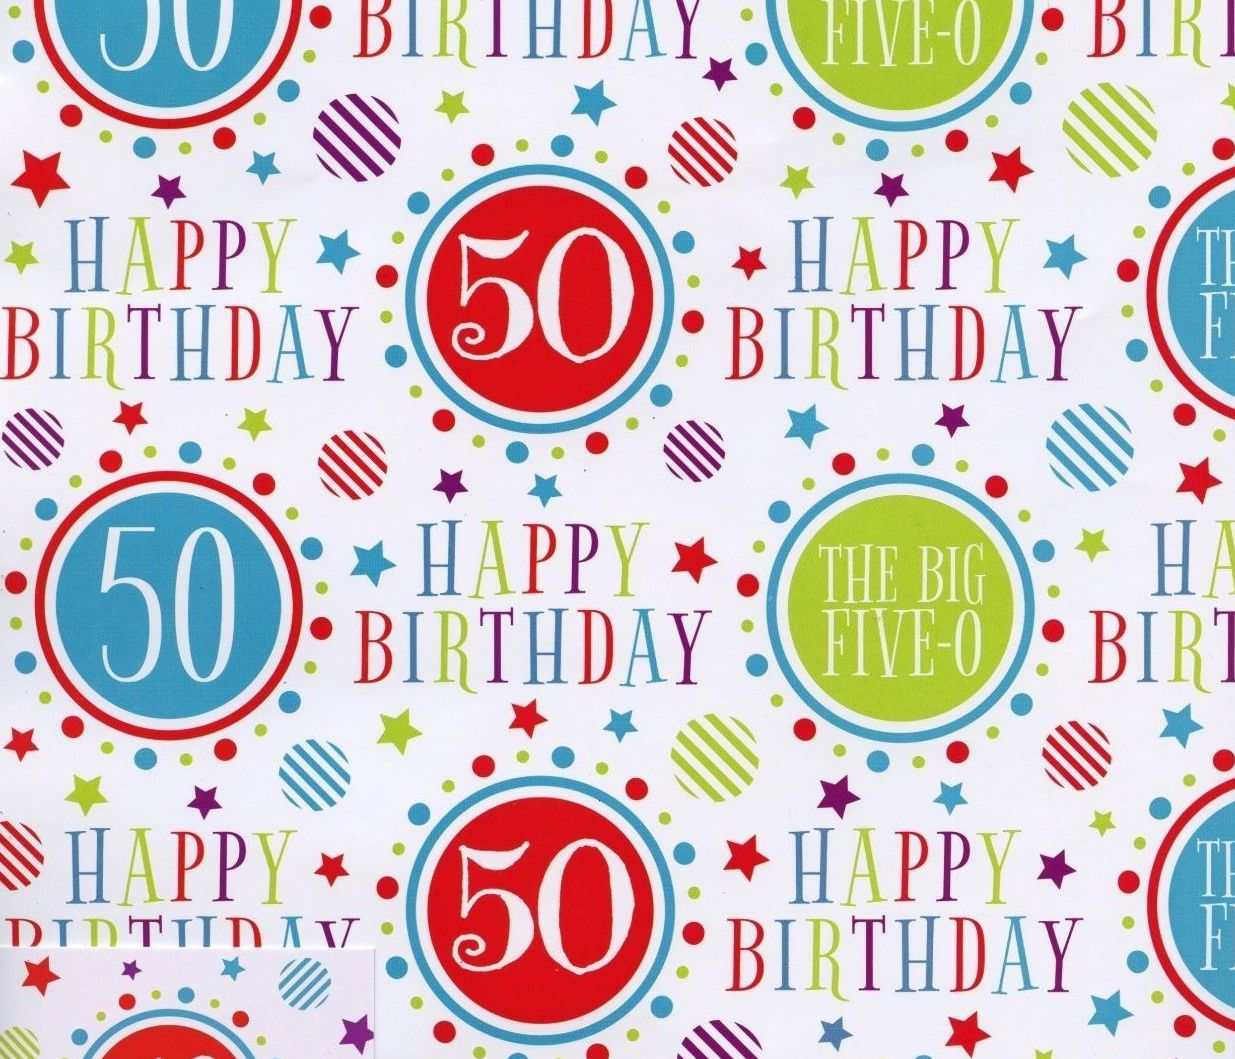 2 Sheets Gift Wrapping Paper Happy 50Th Birthday 50 Today Boy Girl Male Female